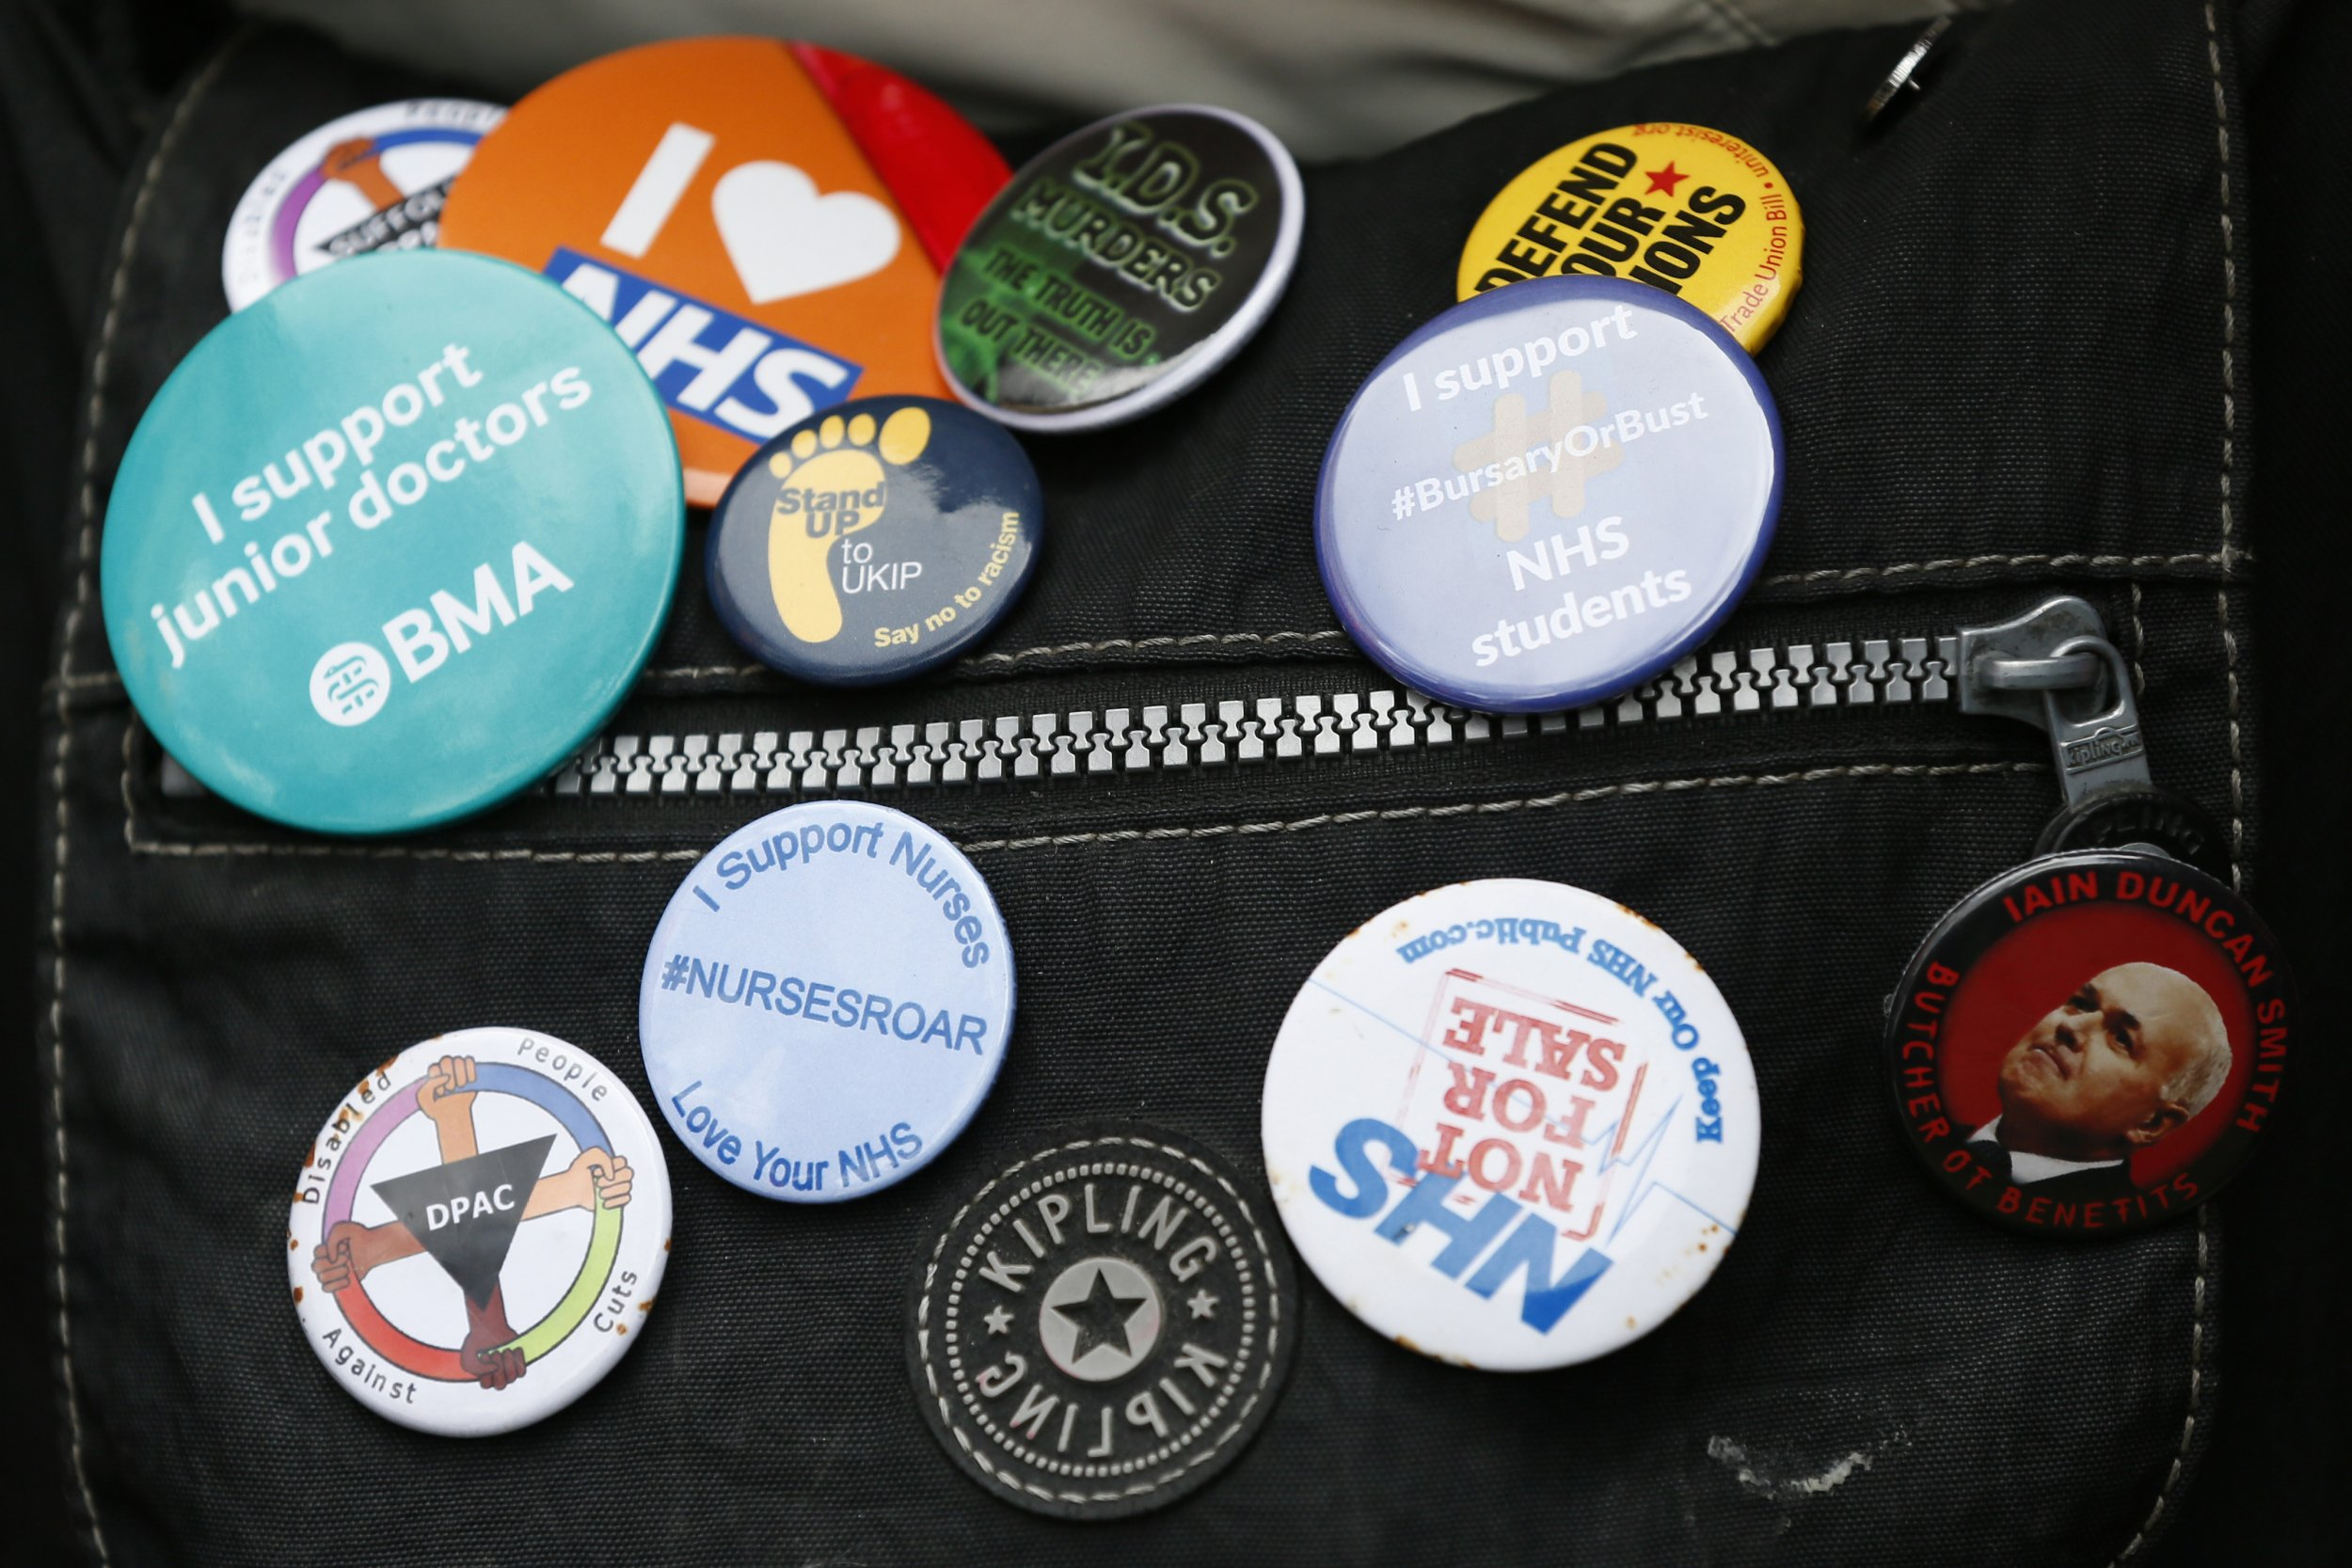 Doctors strike buttons